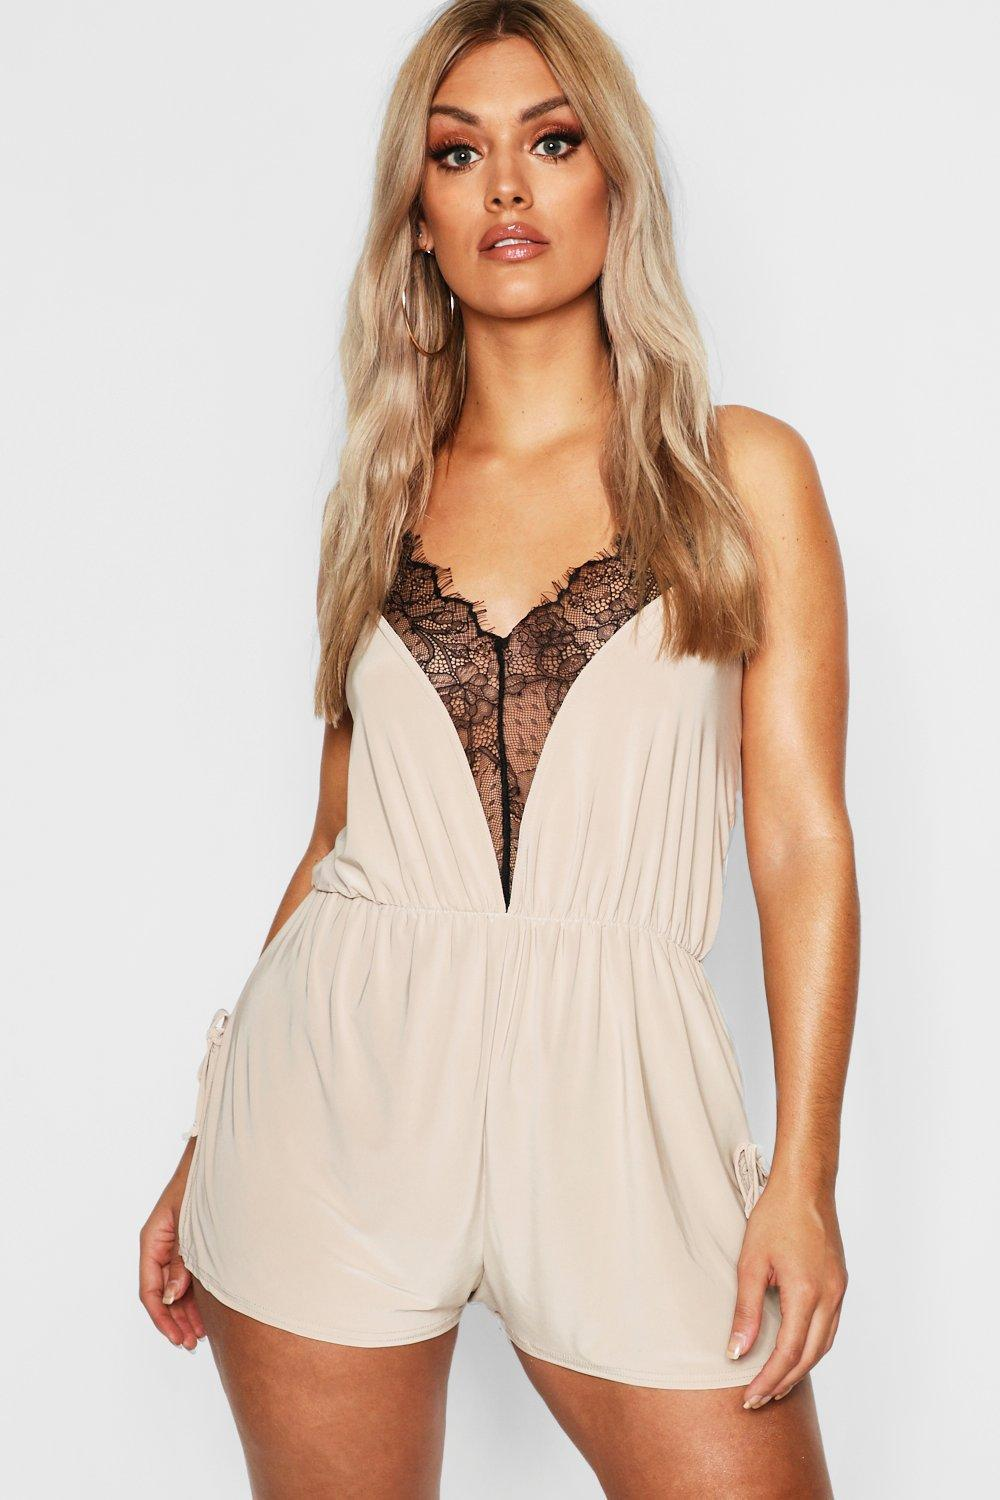 780254e15974 Boohoo Plus Lace Slinky Teddy in Natural - Lyst